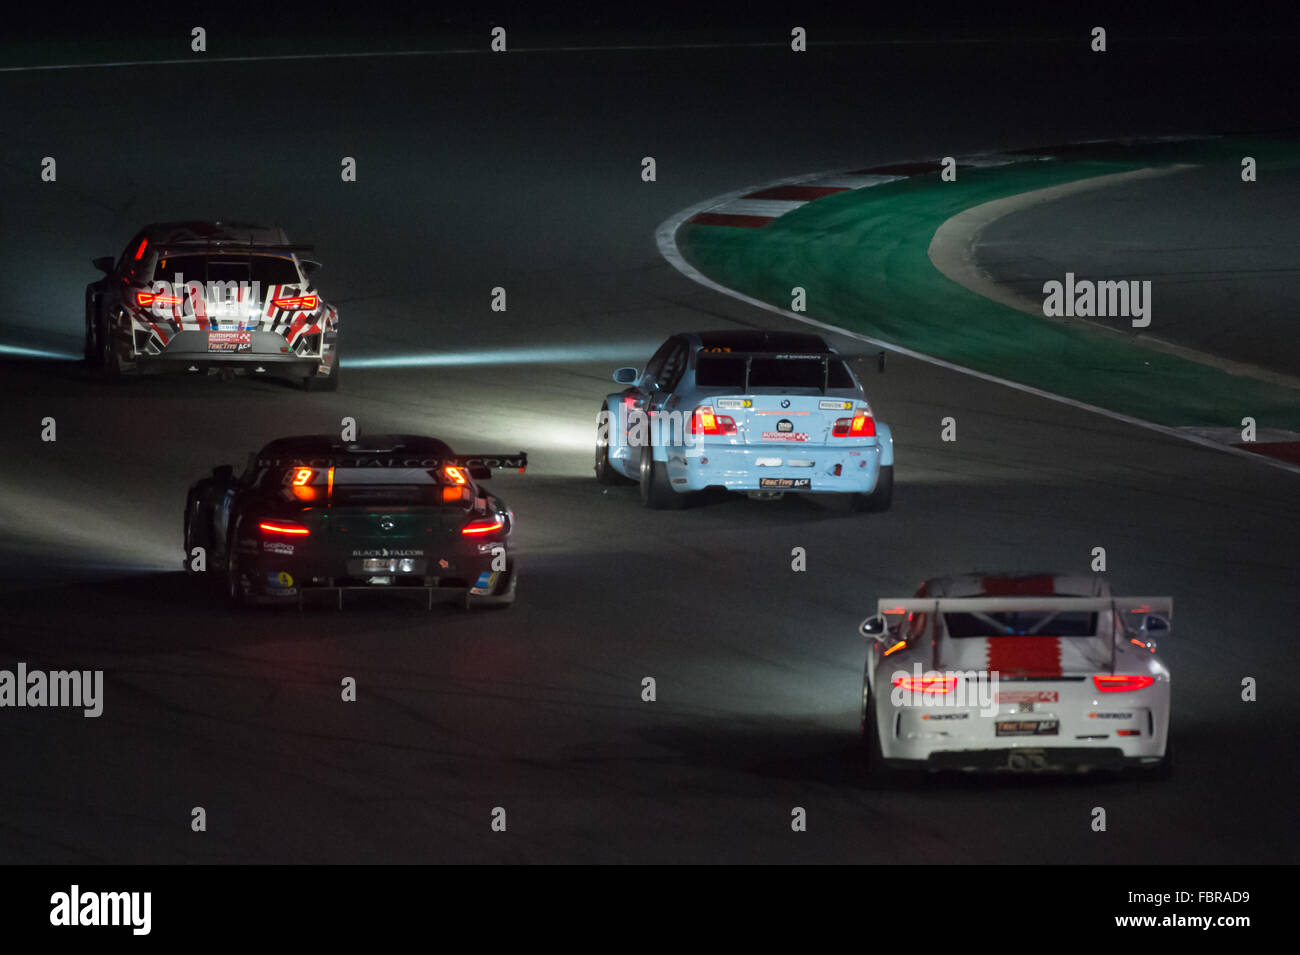 A Mix Of Different Car Types On The Track During The Night Section Of The  Hankook